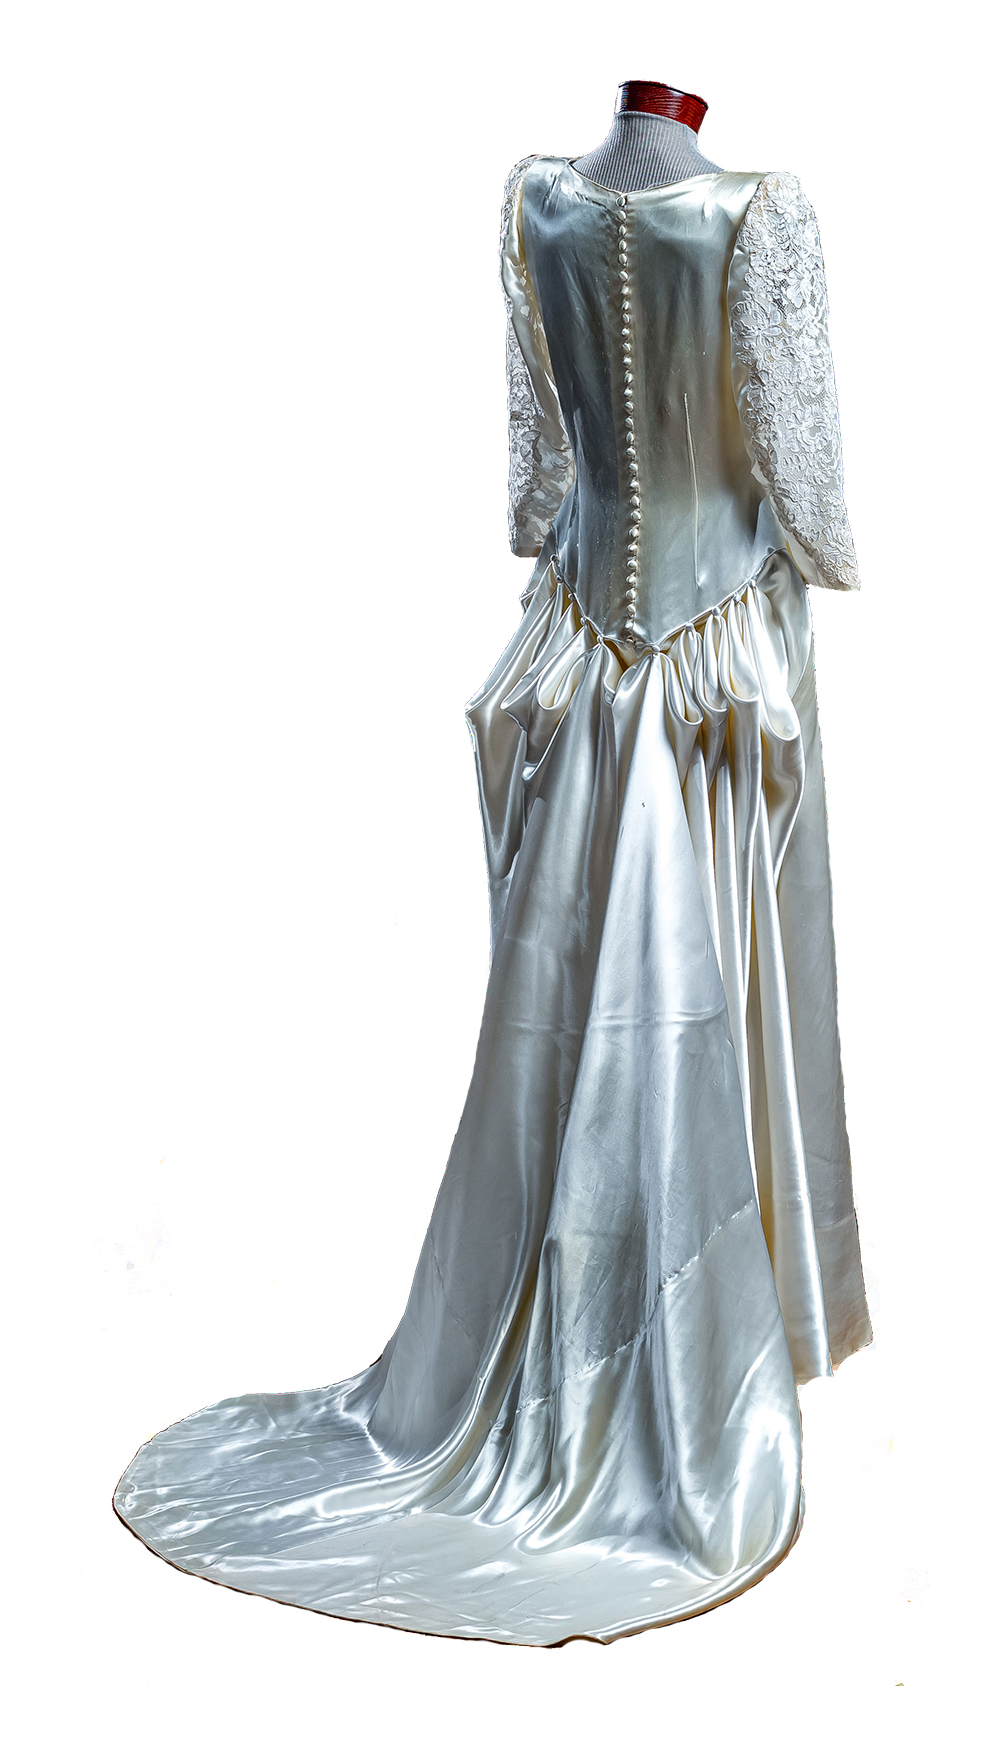 the back of a long-sleeved white dress, with a rippling silk train bustled at the waist, trailing to the floor.